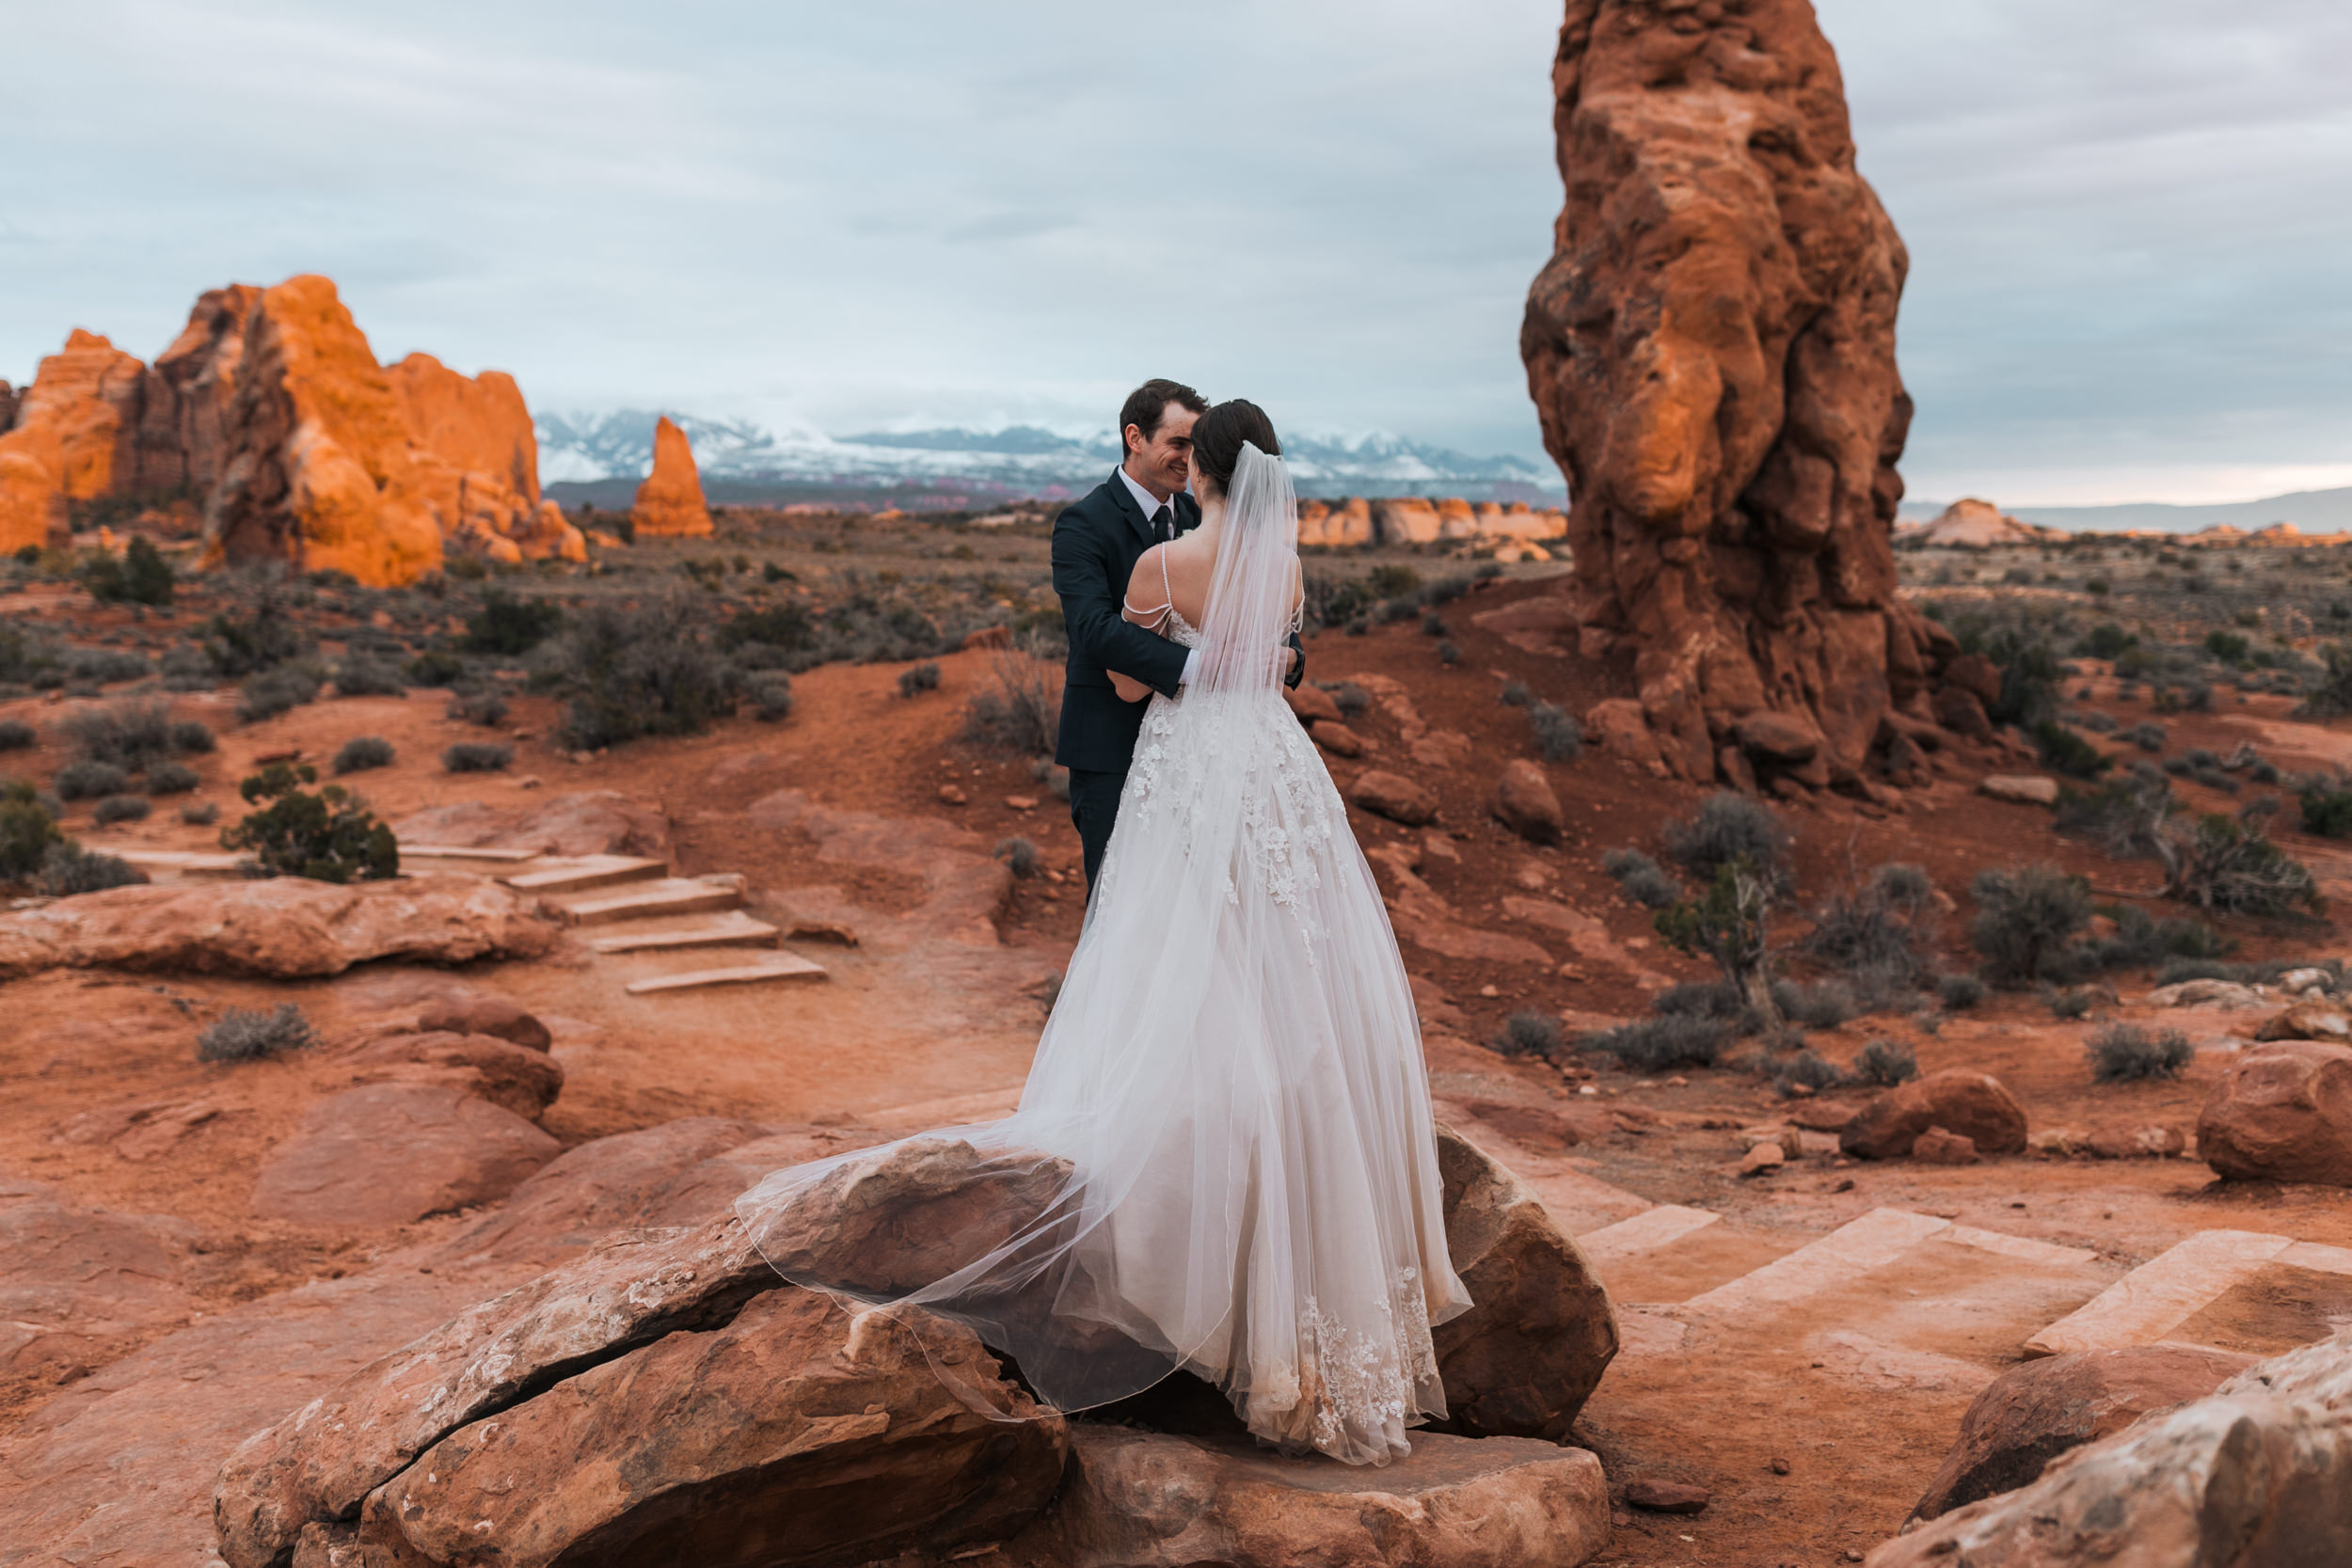 Always bittersweet shooting sunset in Moab because it's beautiful but means the day is coming to an end. These two just got married and went out for an evening hike to take photos in Arches National Park.